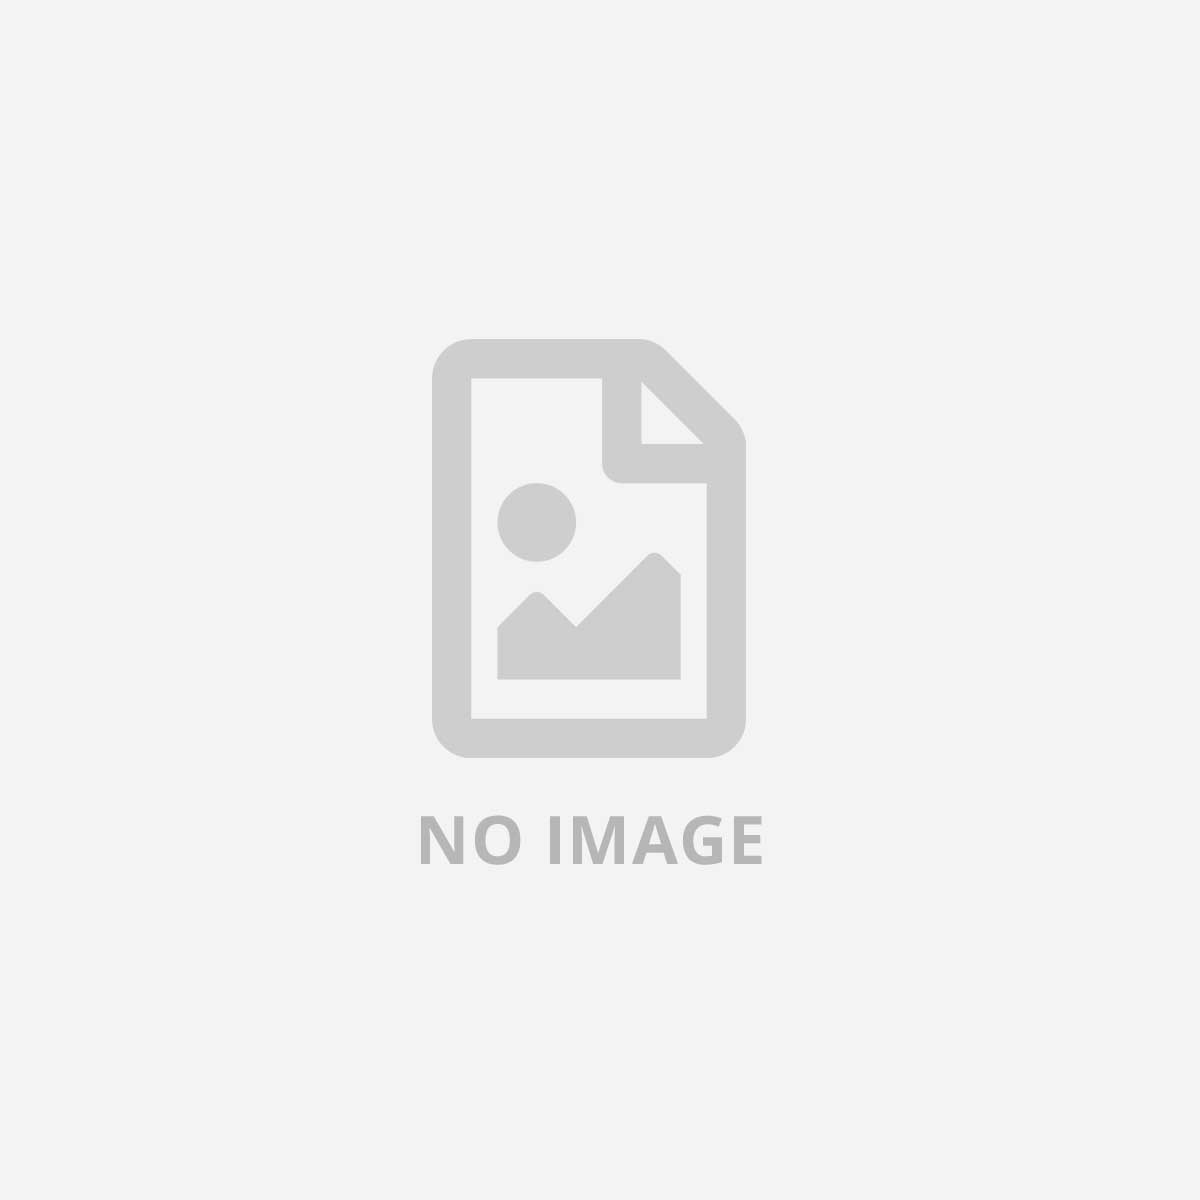 KINGSTON 120GB A400 SATA3 2.5 SSD (7MM